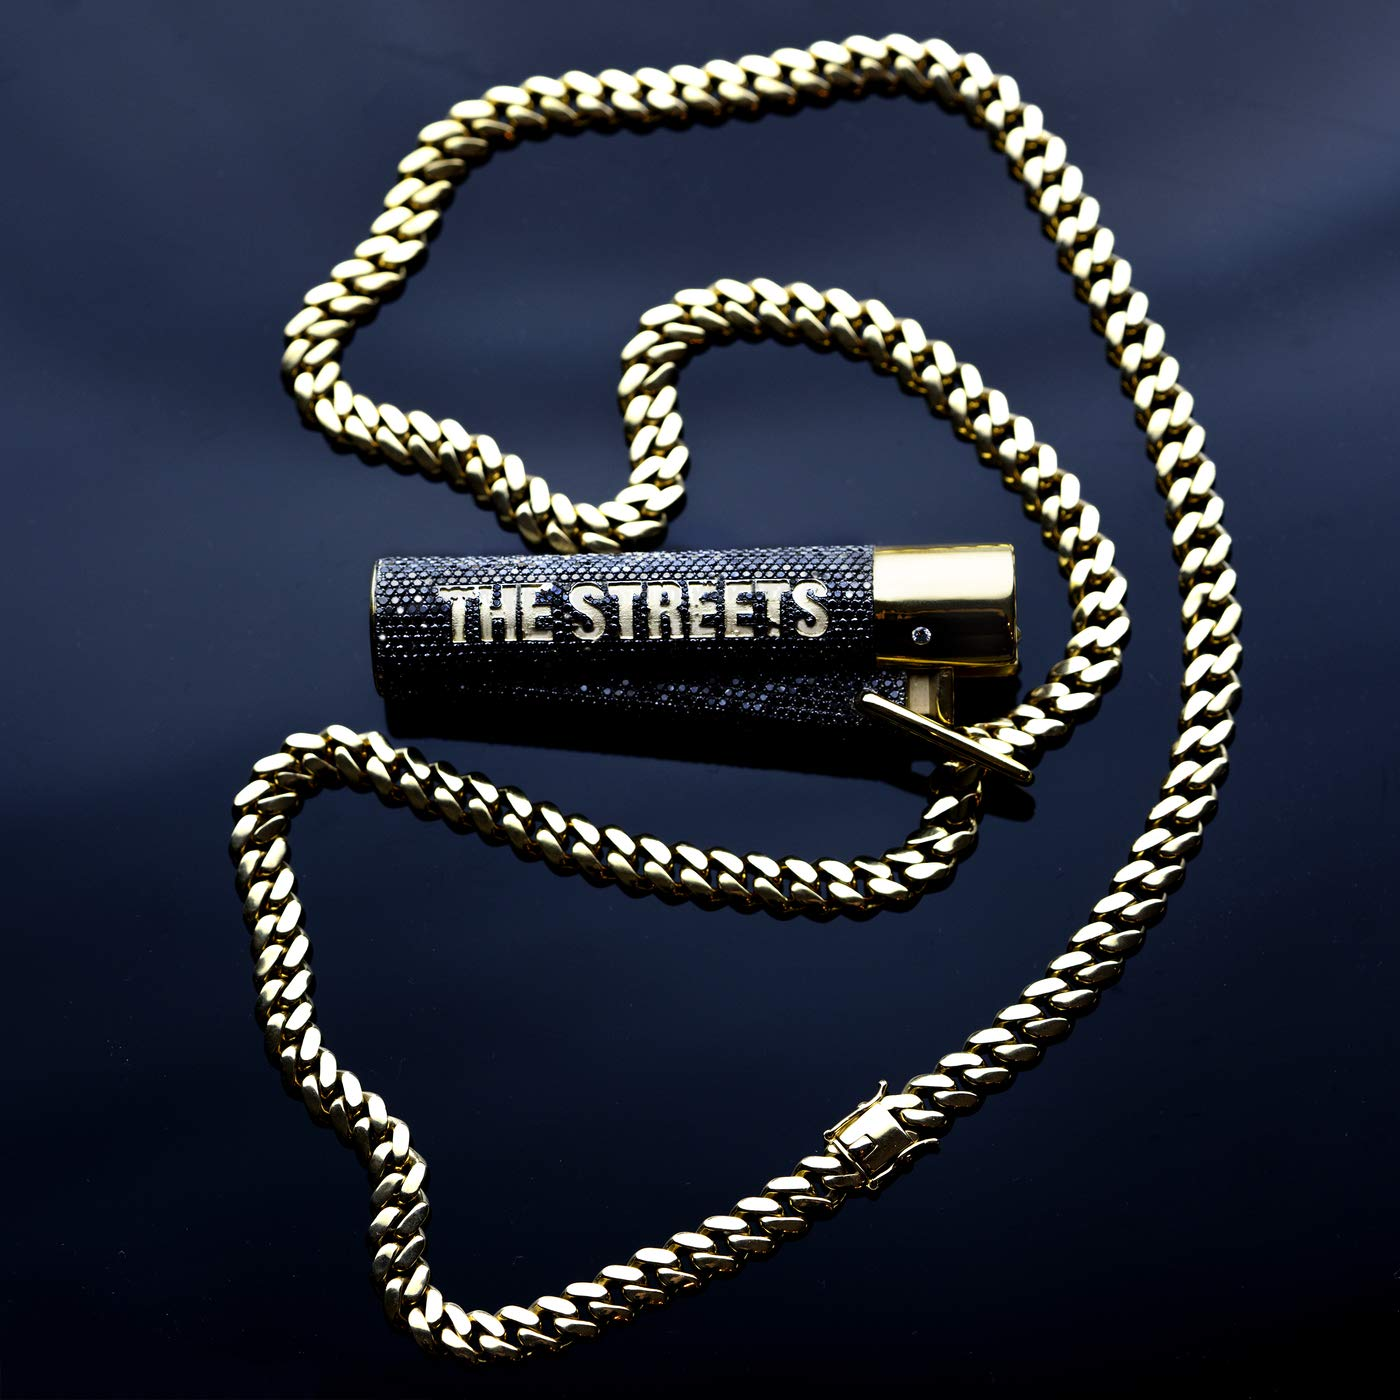 The Streets – None Of Us Are Getting Out Of This Life Alive (2020) [FLAC]